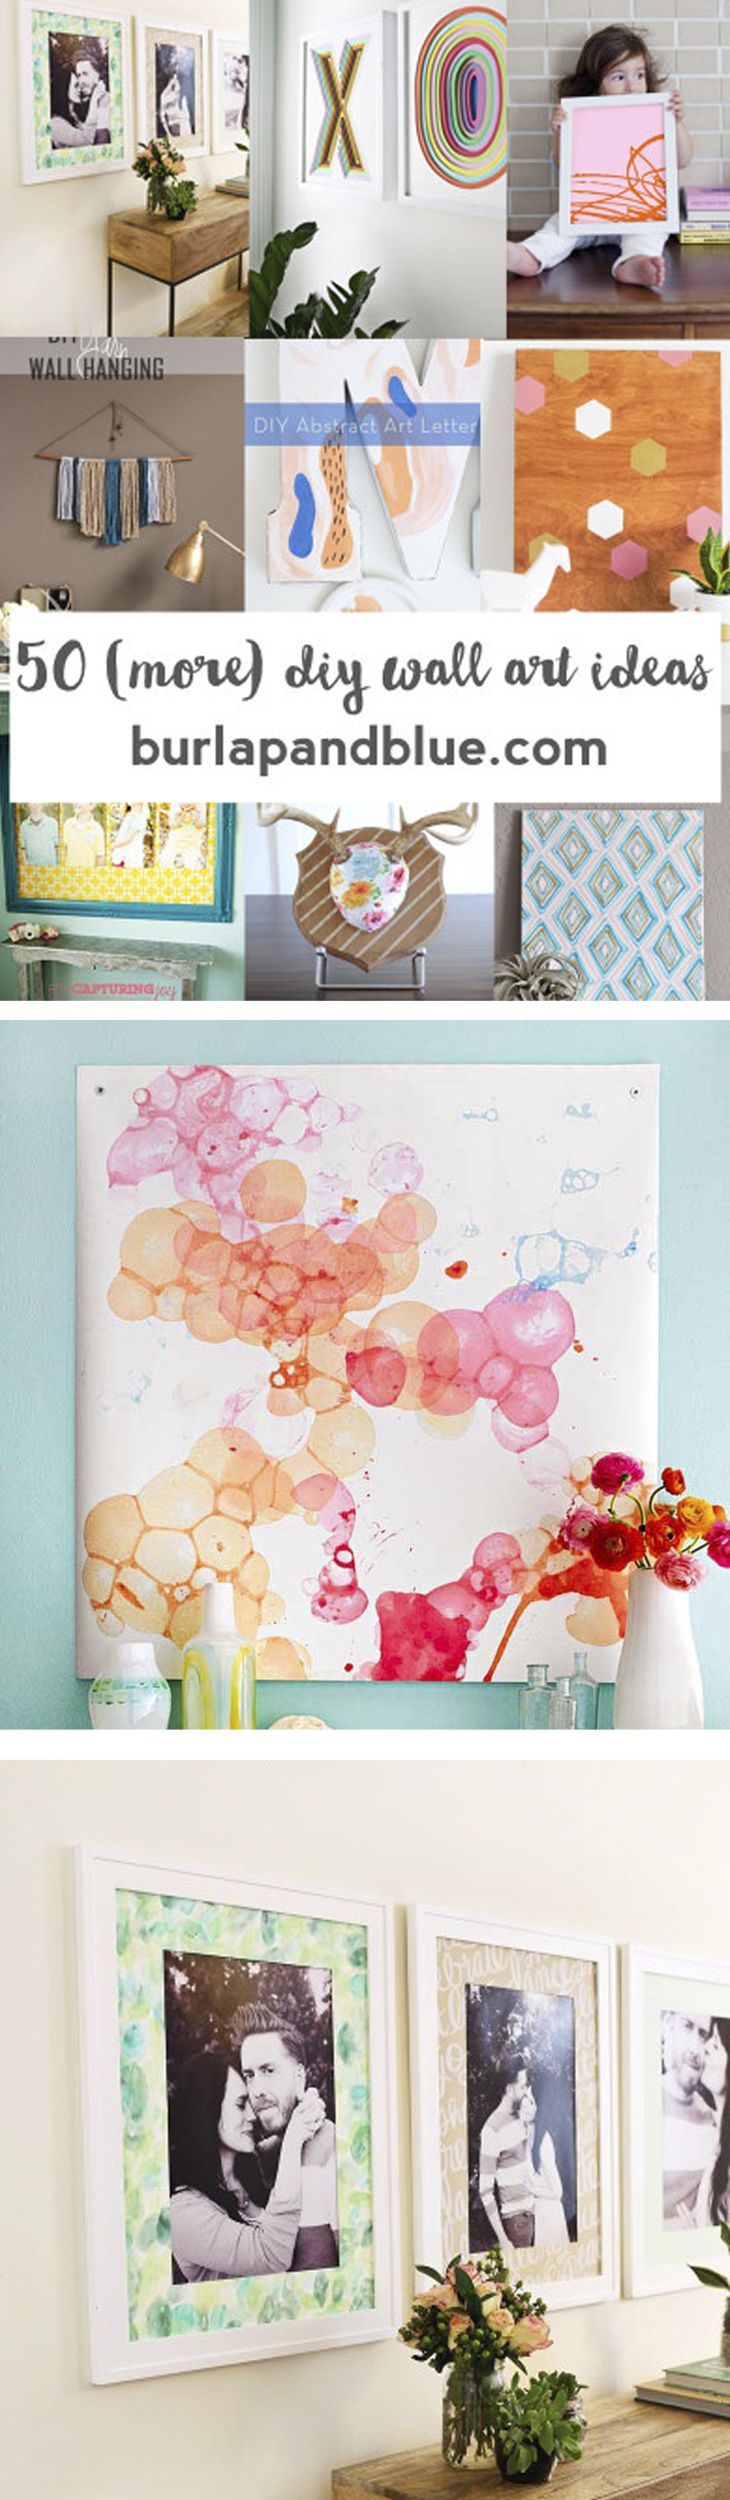 more easy wall art ideas pinterest blank walls diy wall